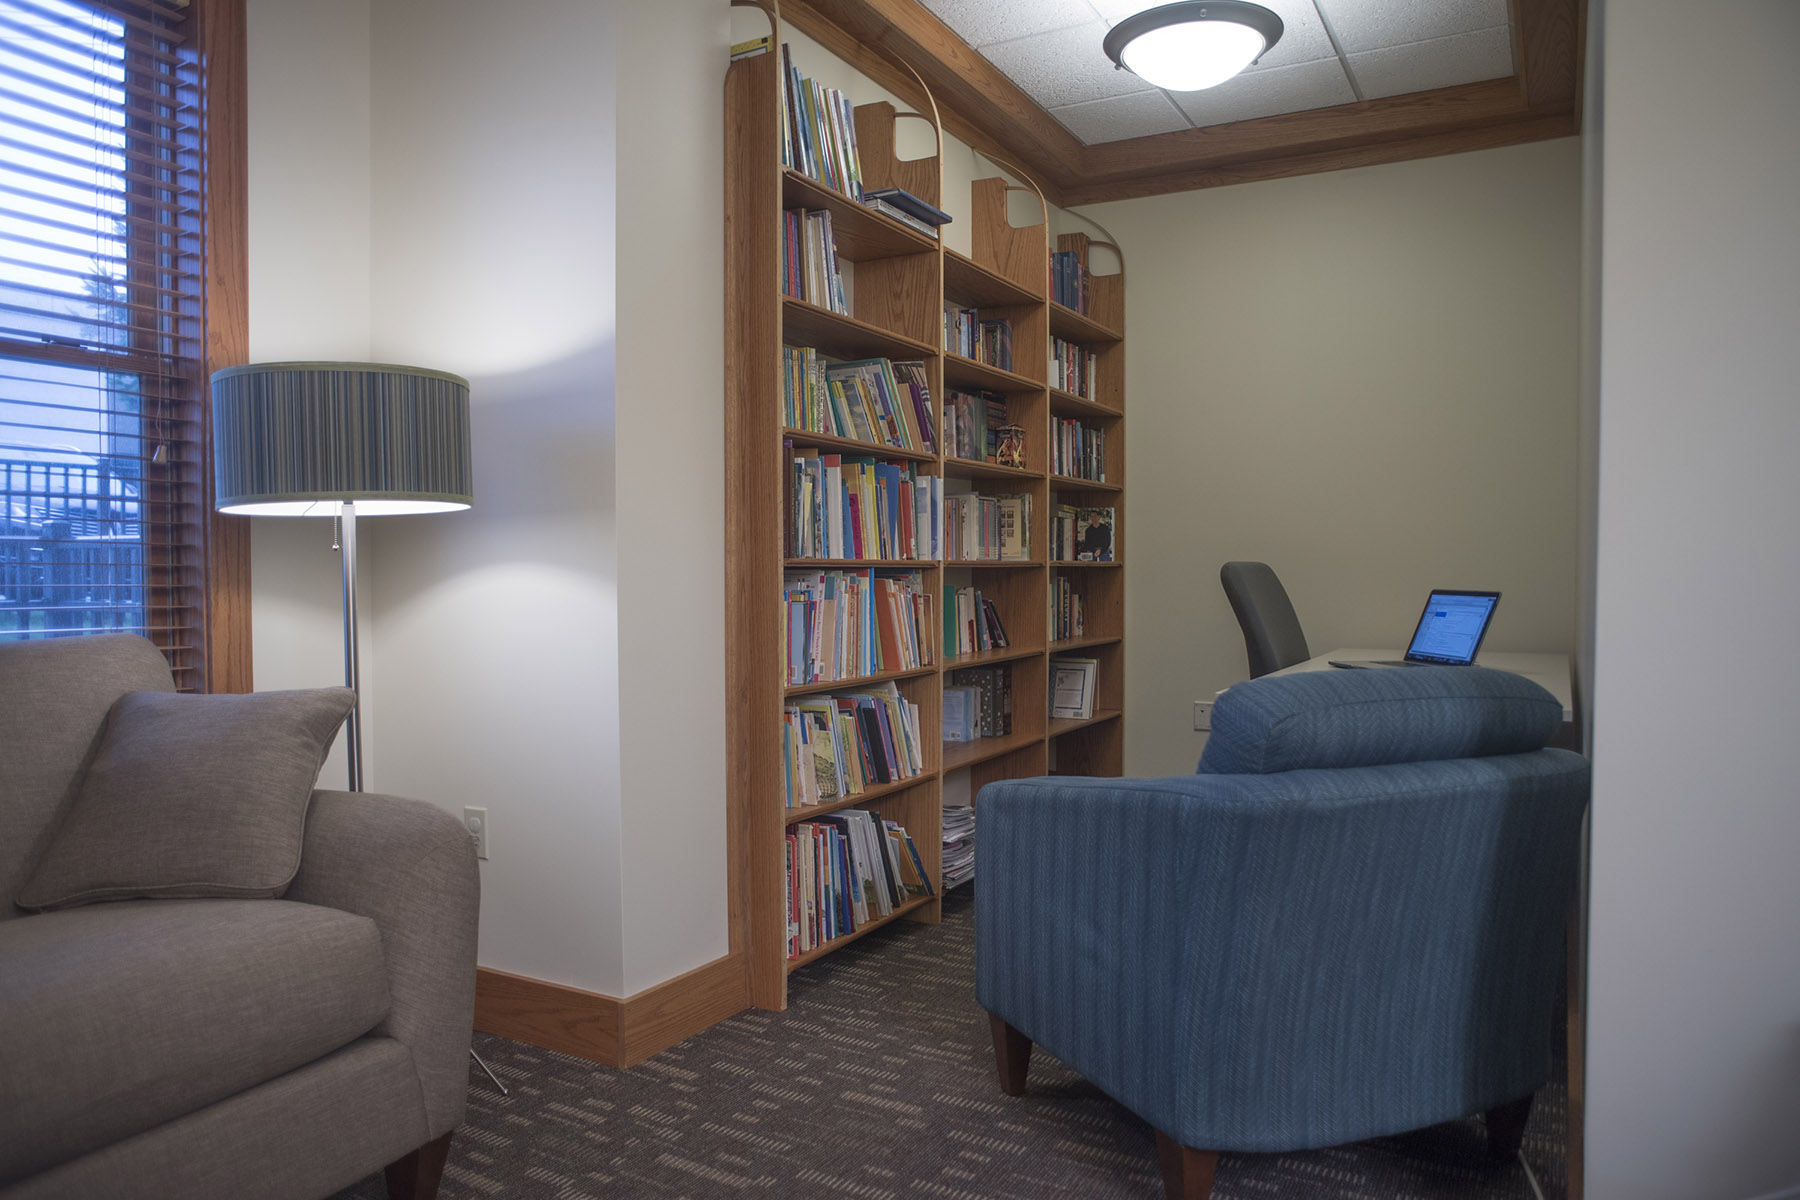 Library in common area